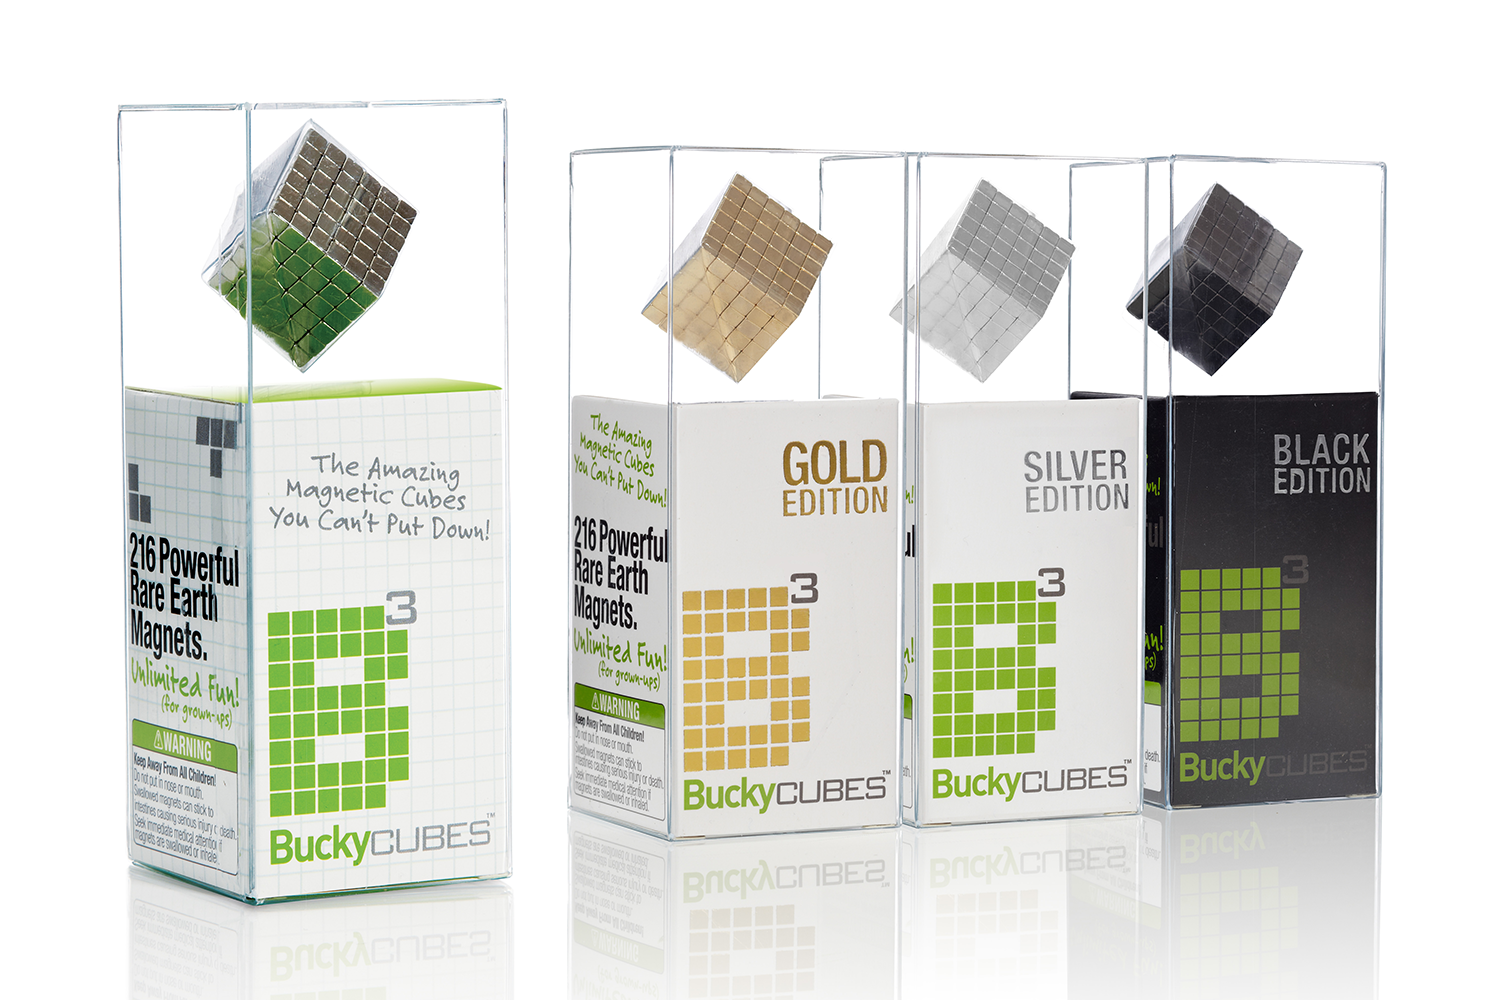 Buckycubes Packaging